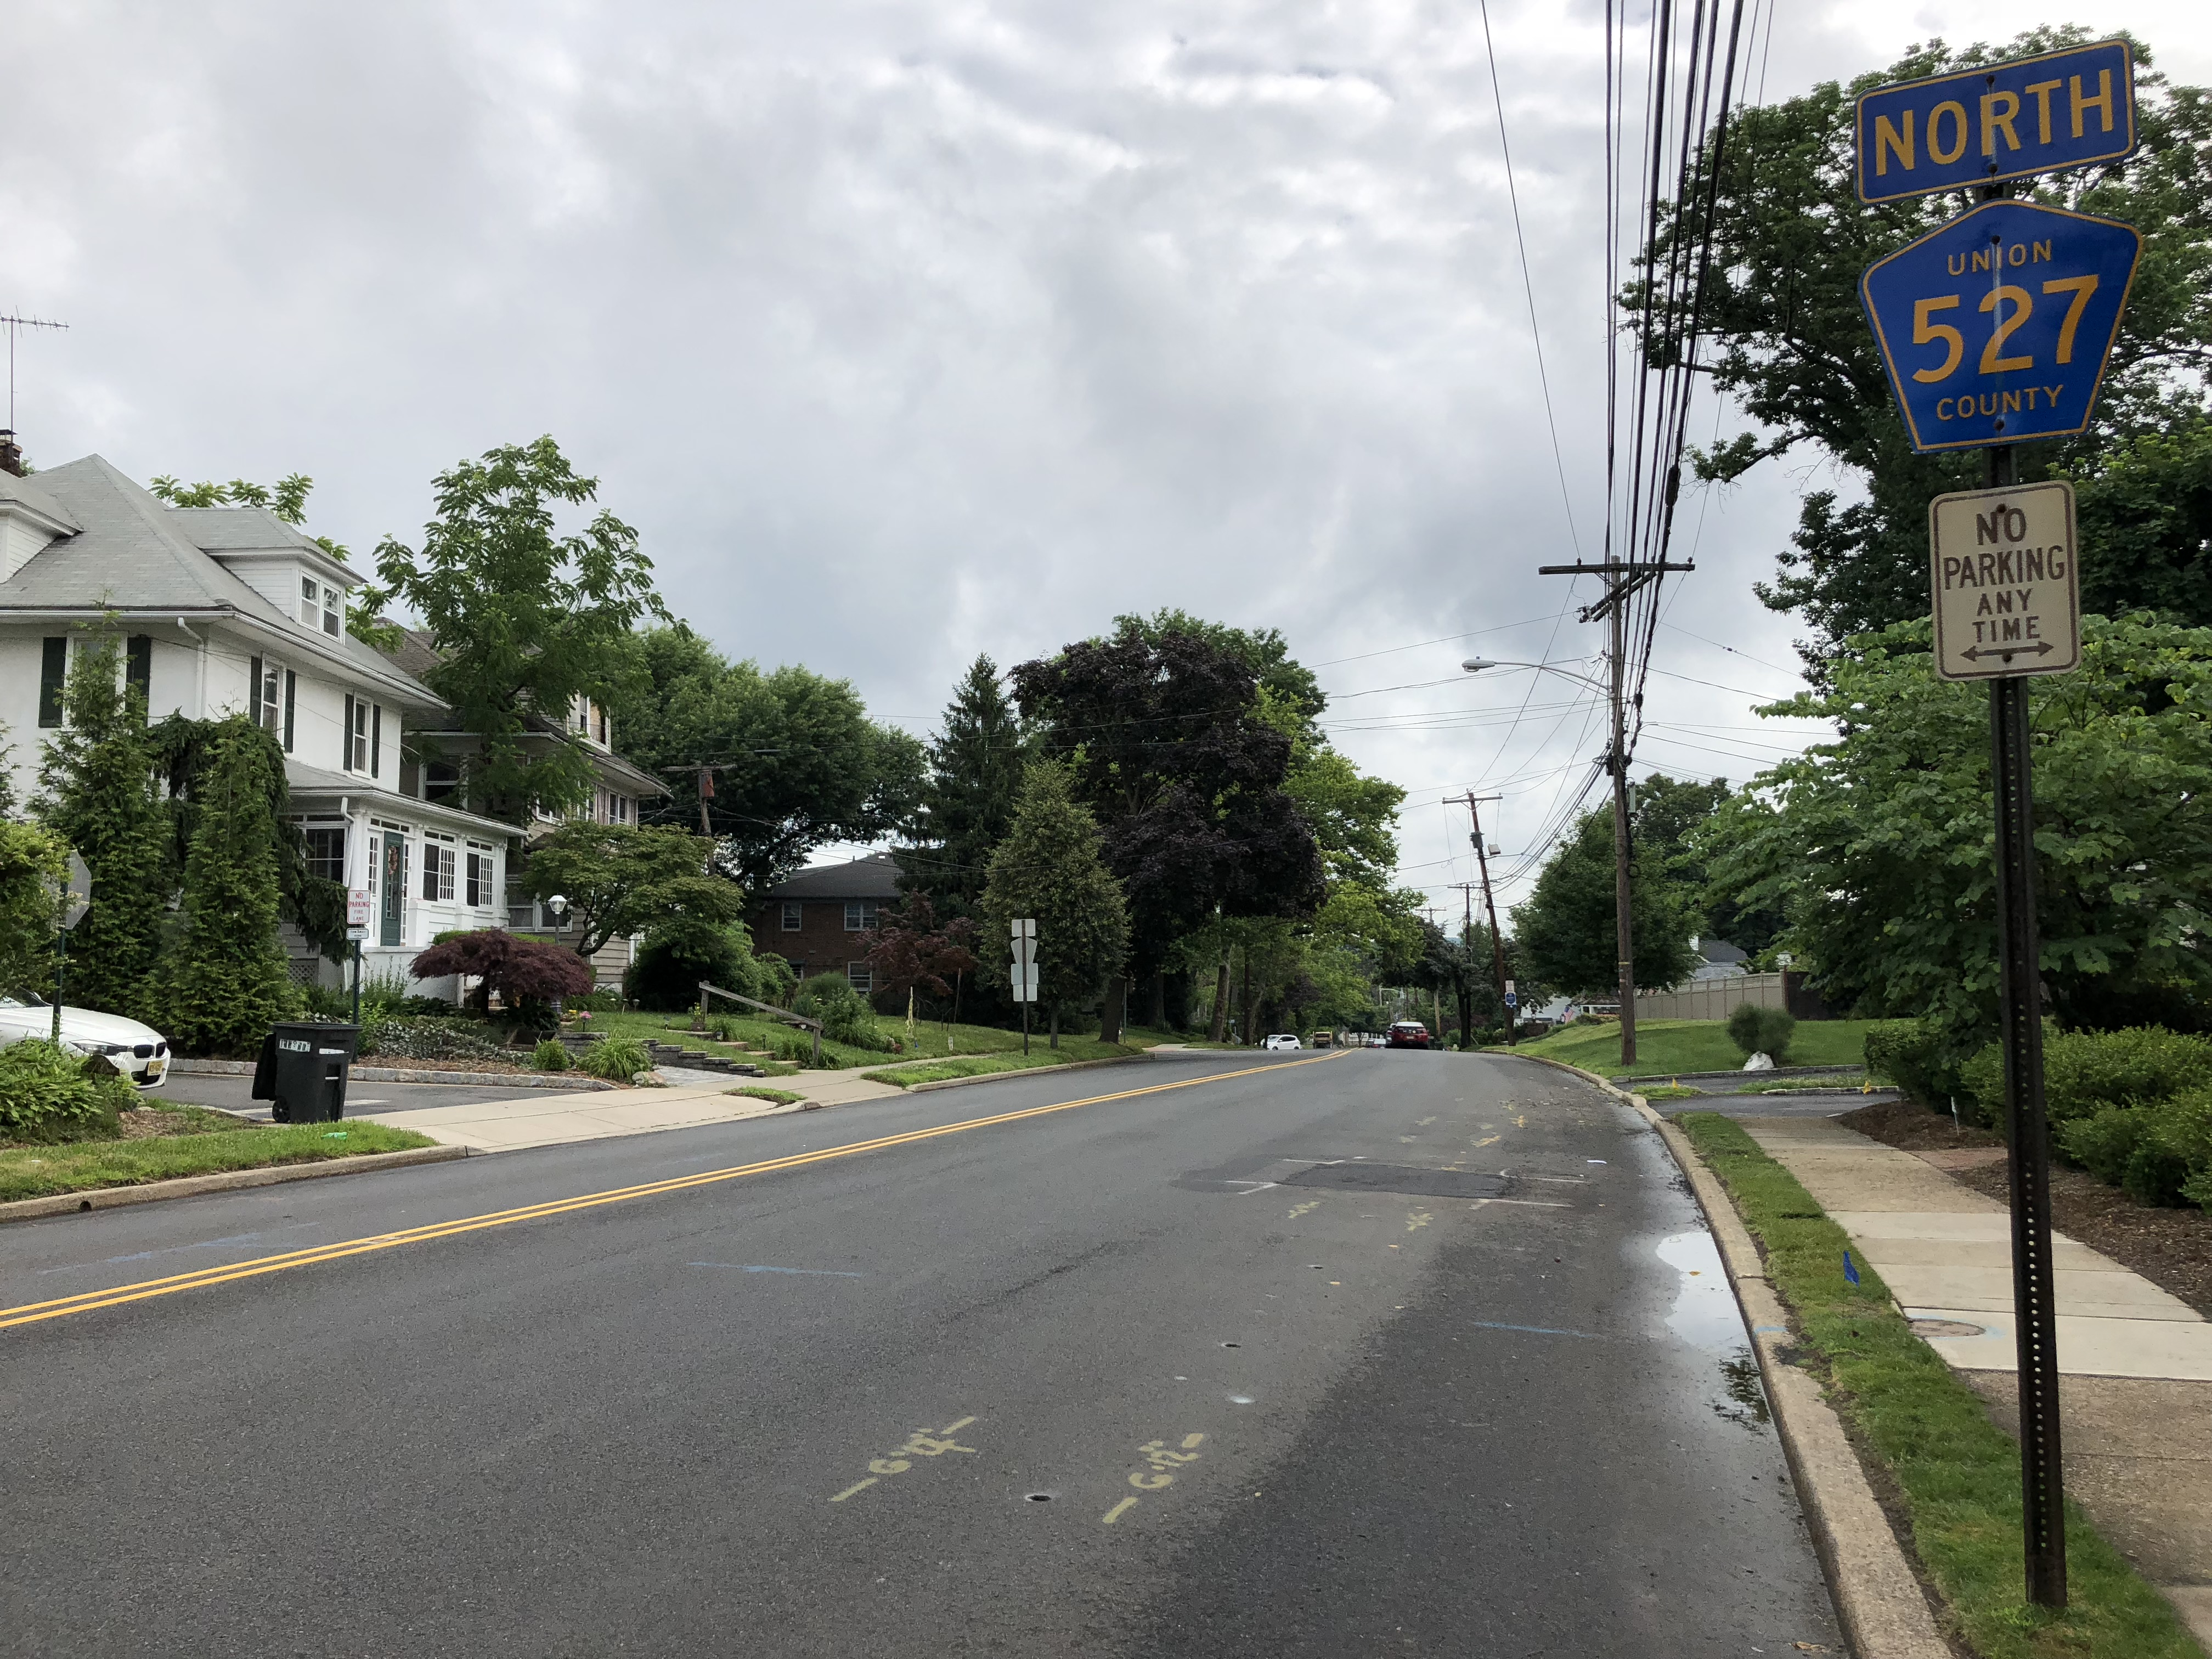 File:2018-06-21 09 33 45 View north along Union County Route